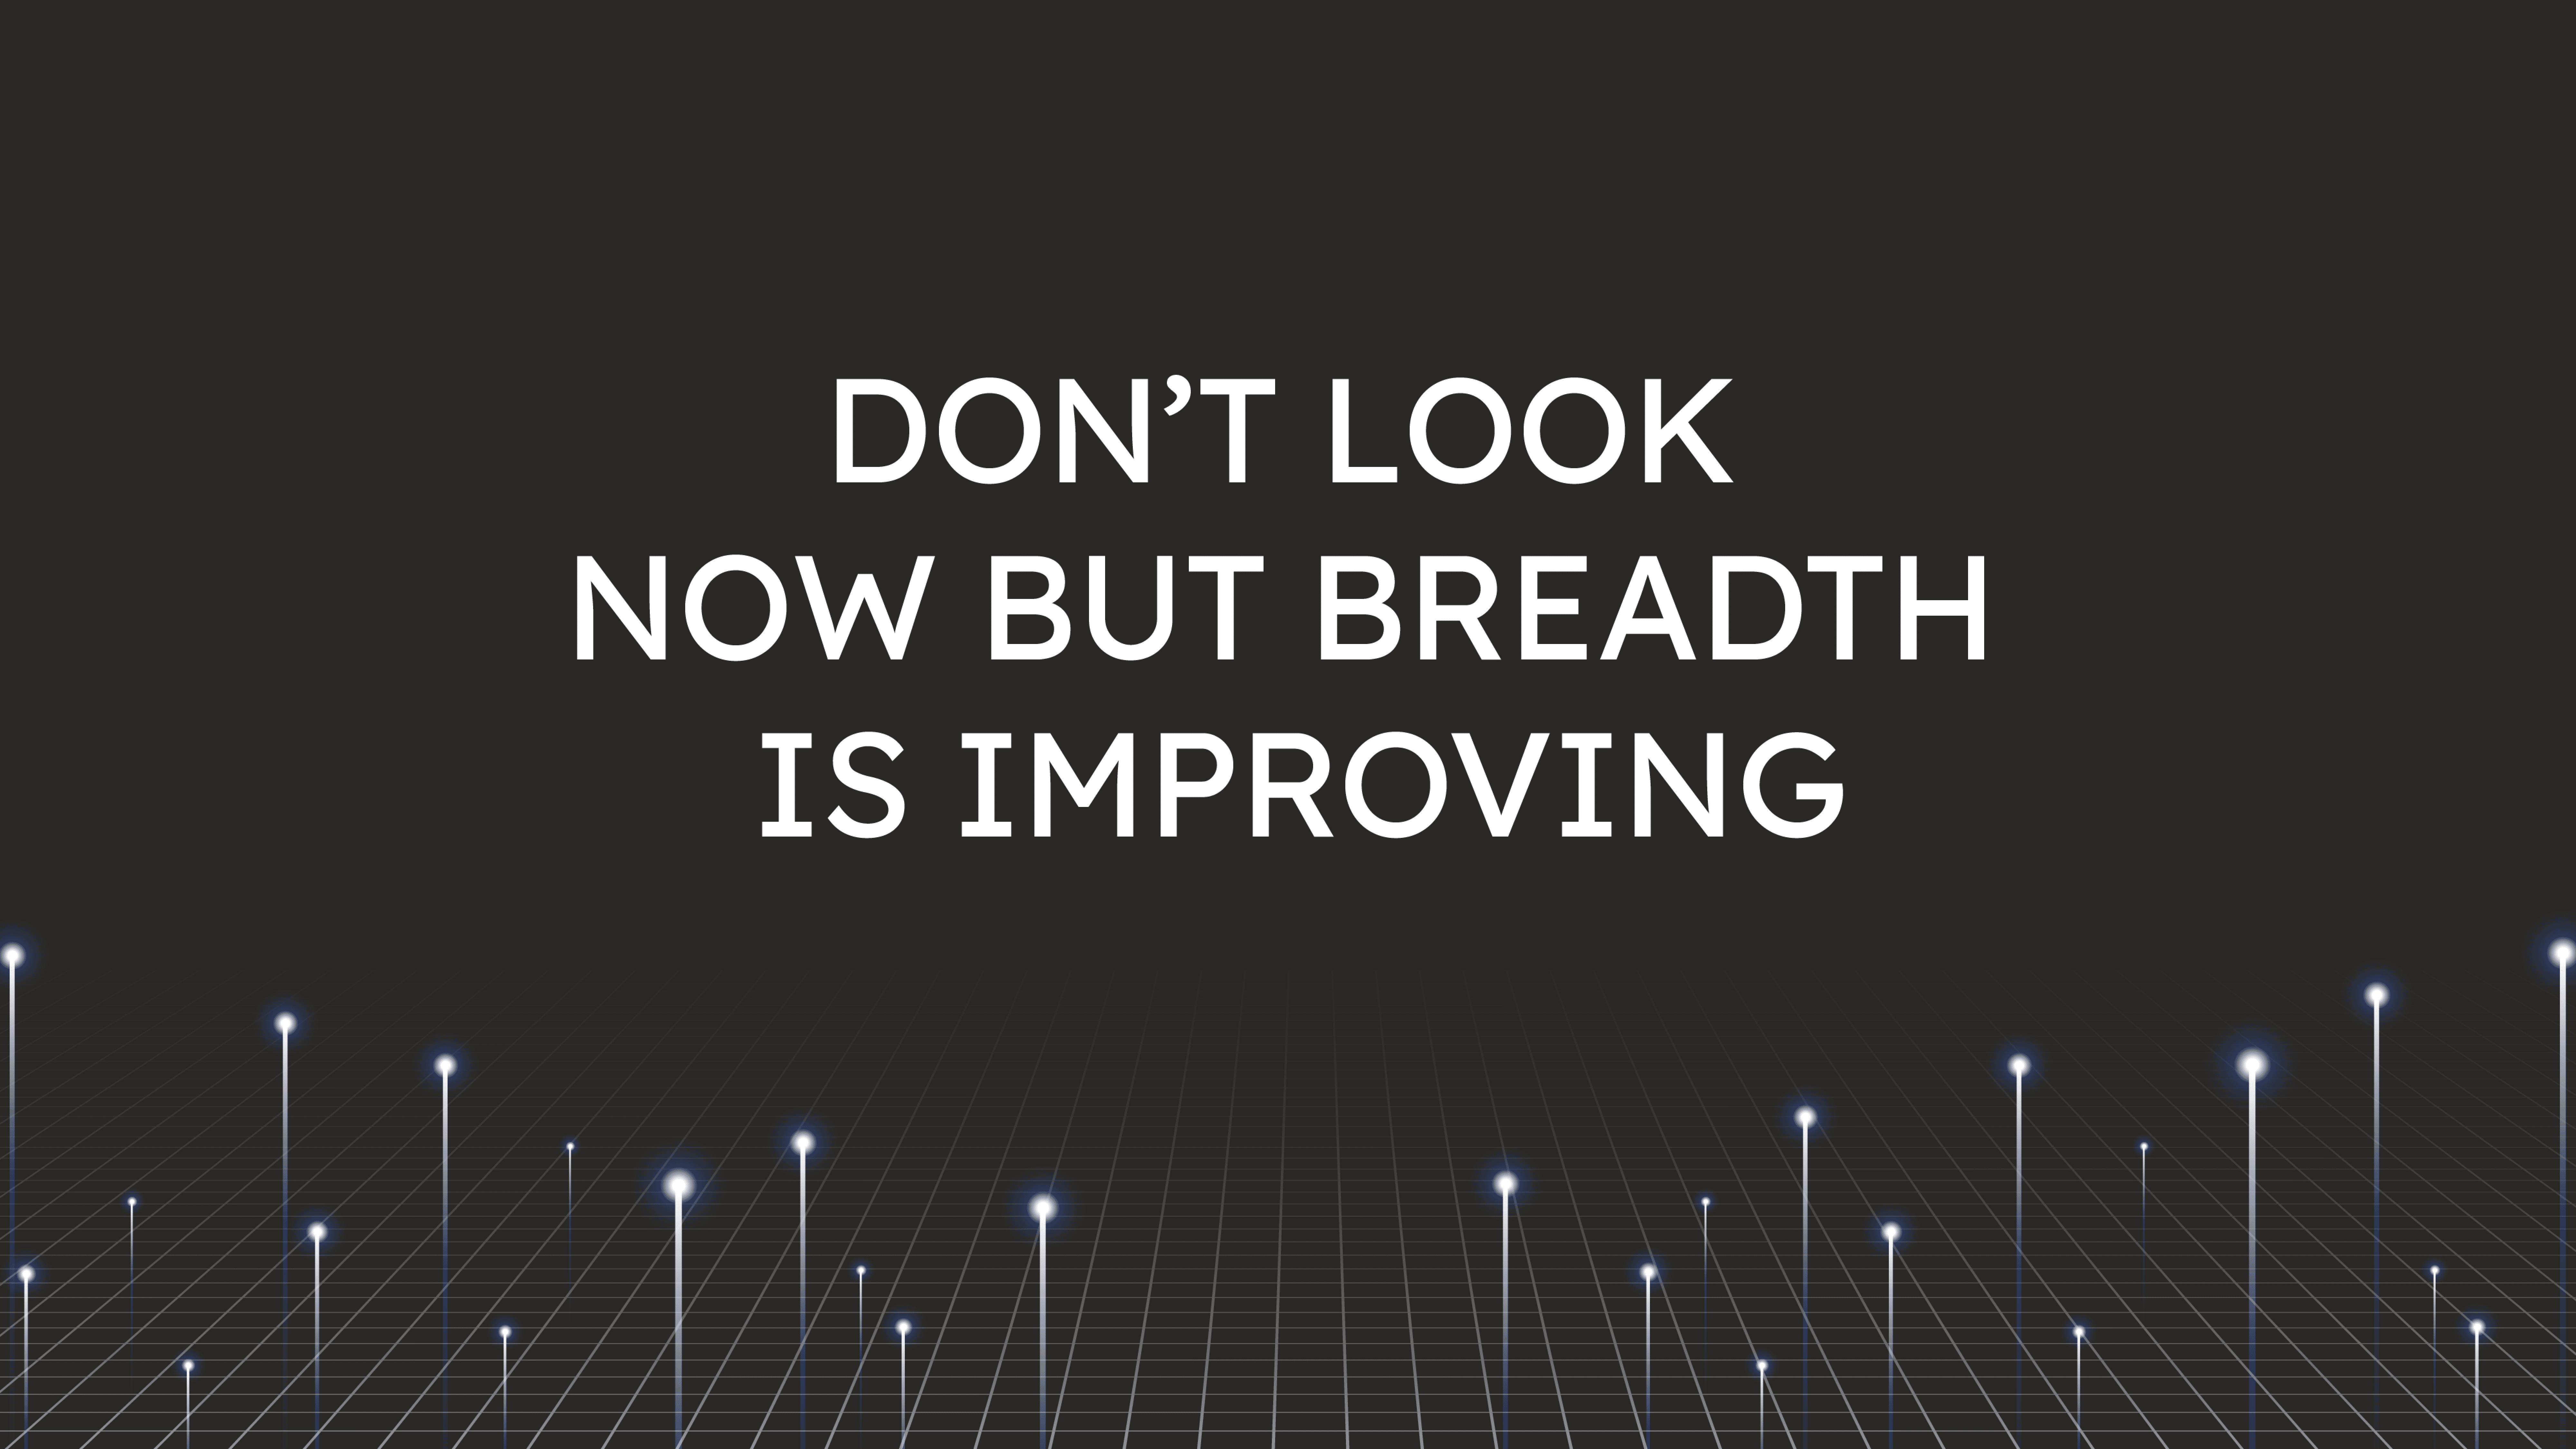 Don't Look Now  but Breadth is Improving